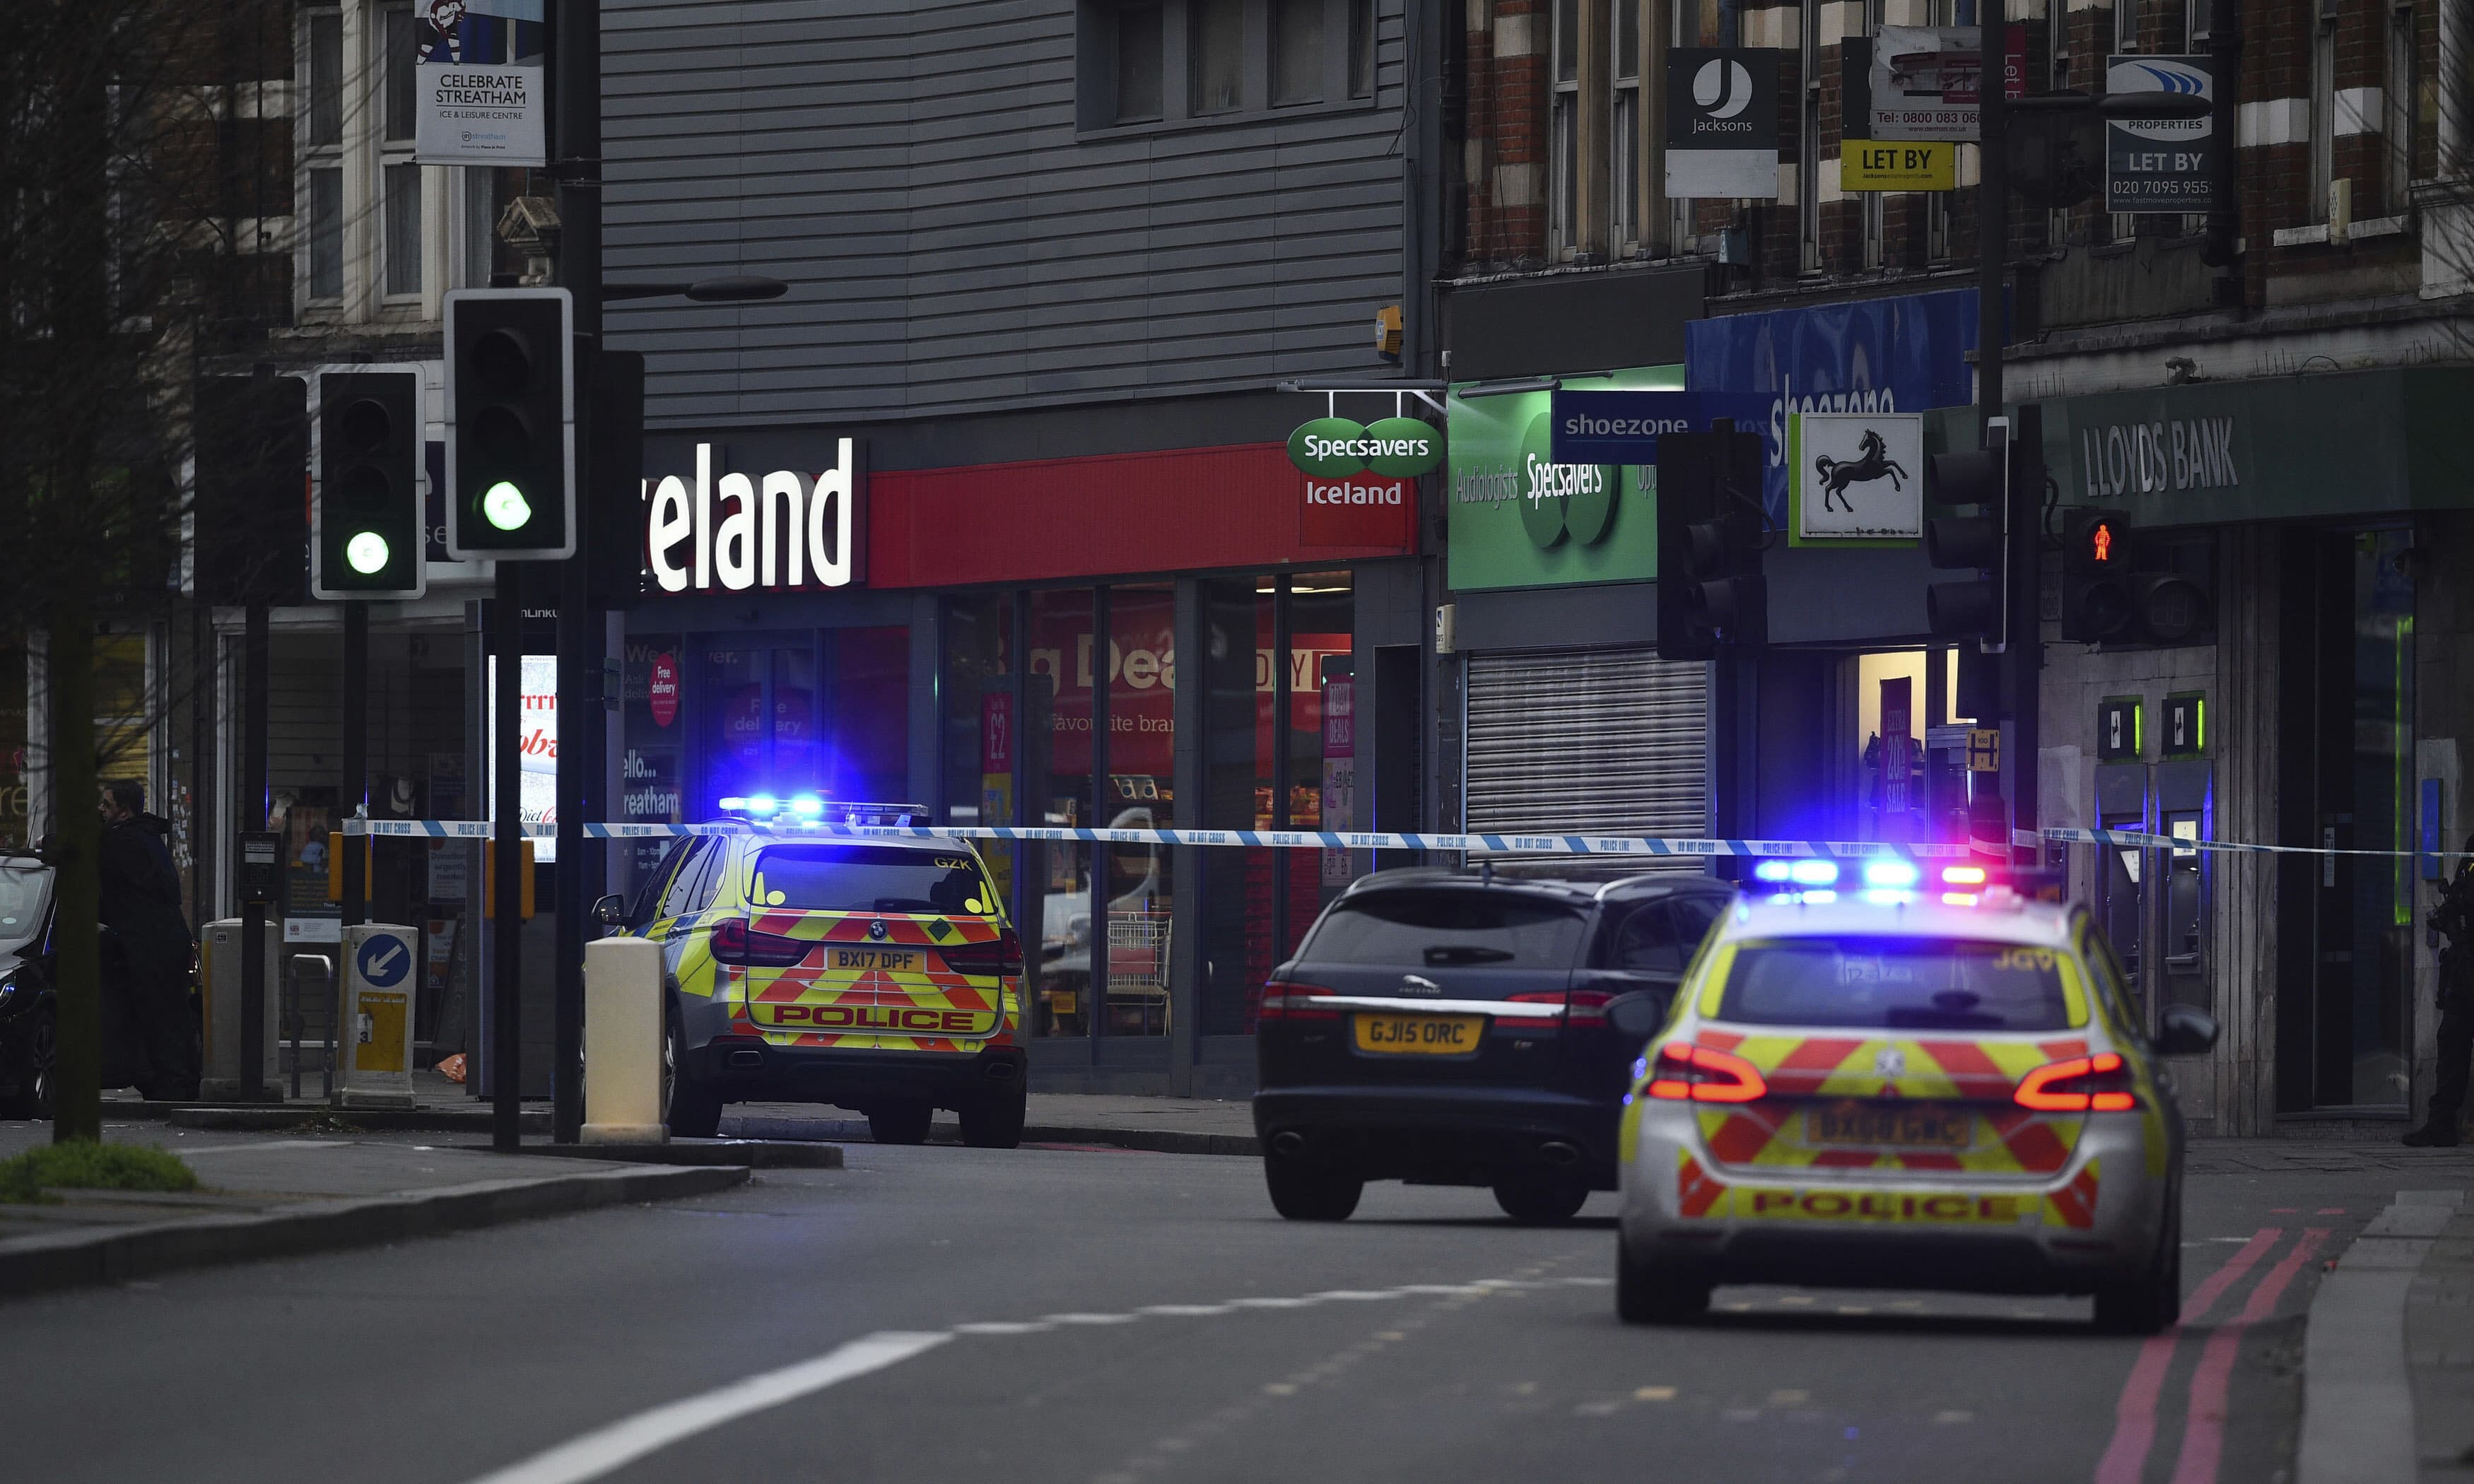 """London police say officers shot a man during a """"terrorism-related incident"""" that involved the stabbings of """"a number of people"""". — AP"""